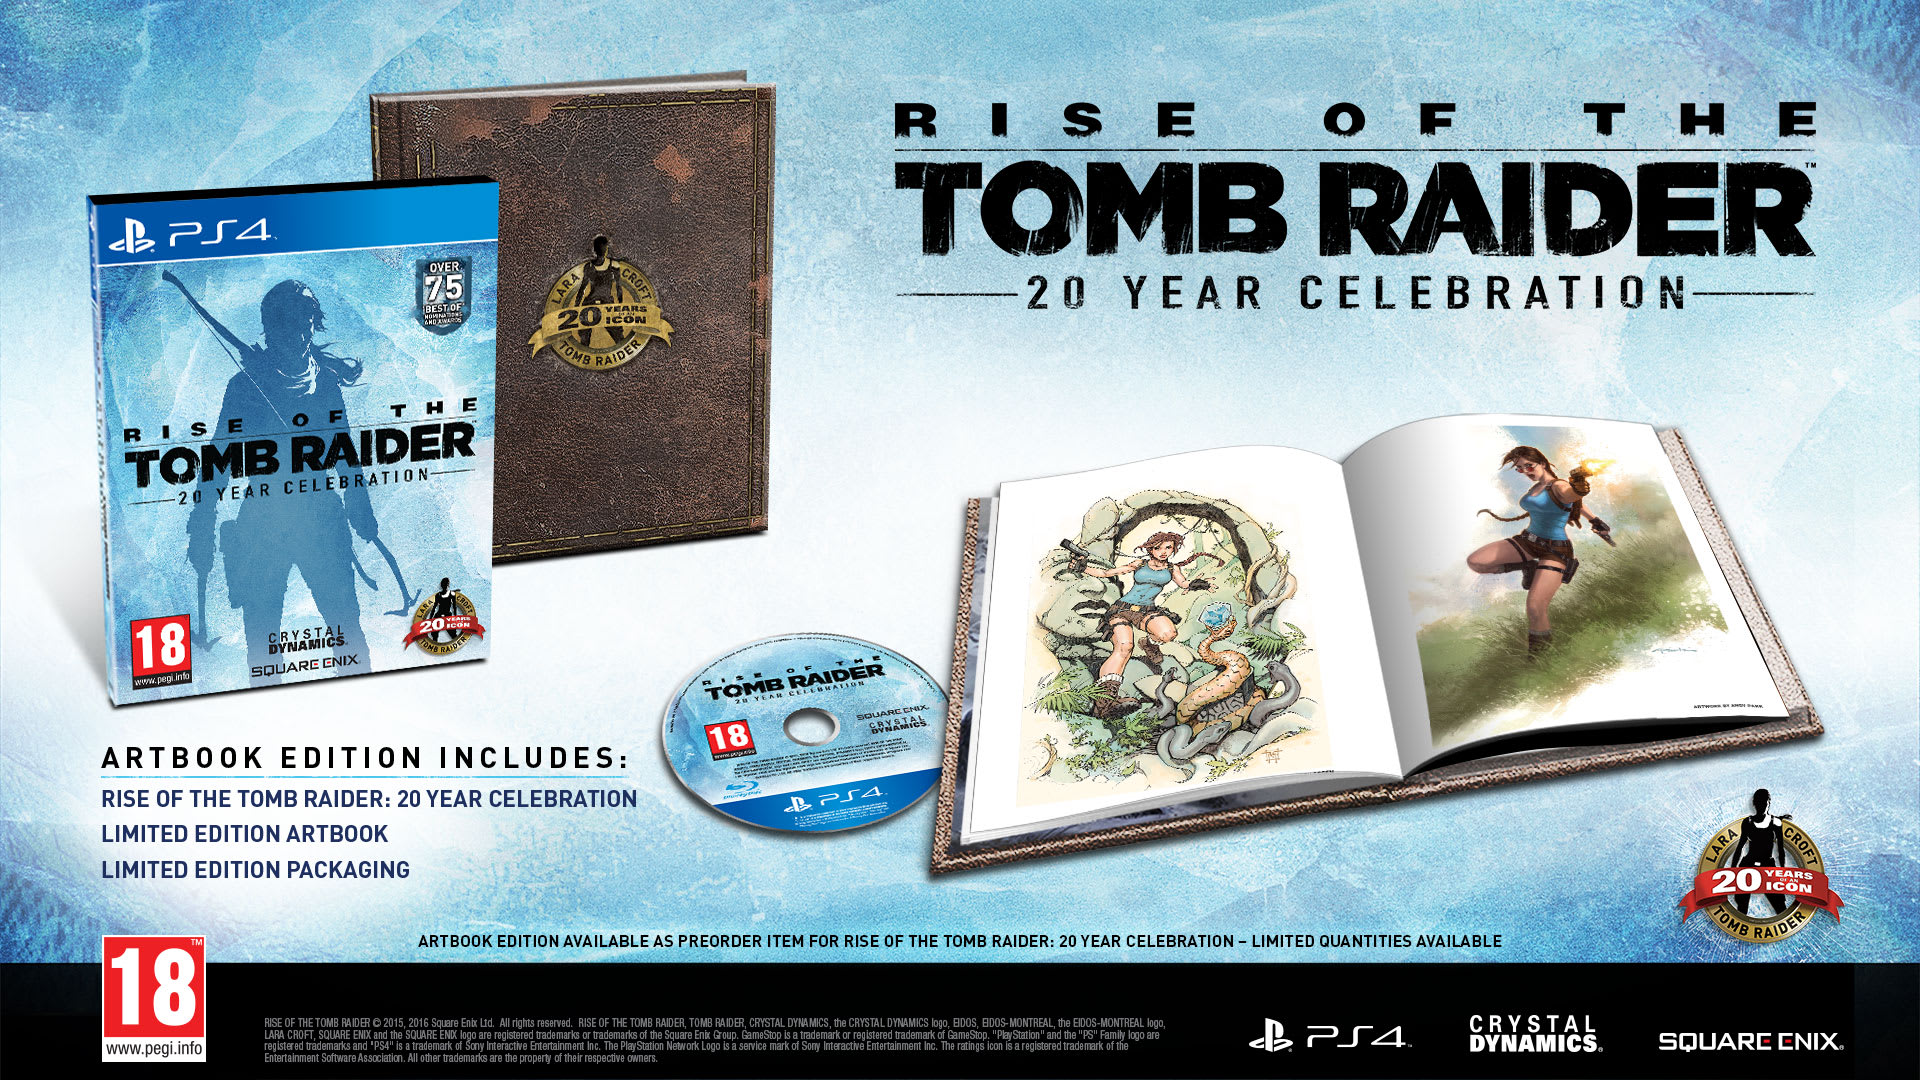 Rise of the Tomb Raider for PS4 - Pre-order Now at GAME.co.uk!